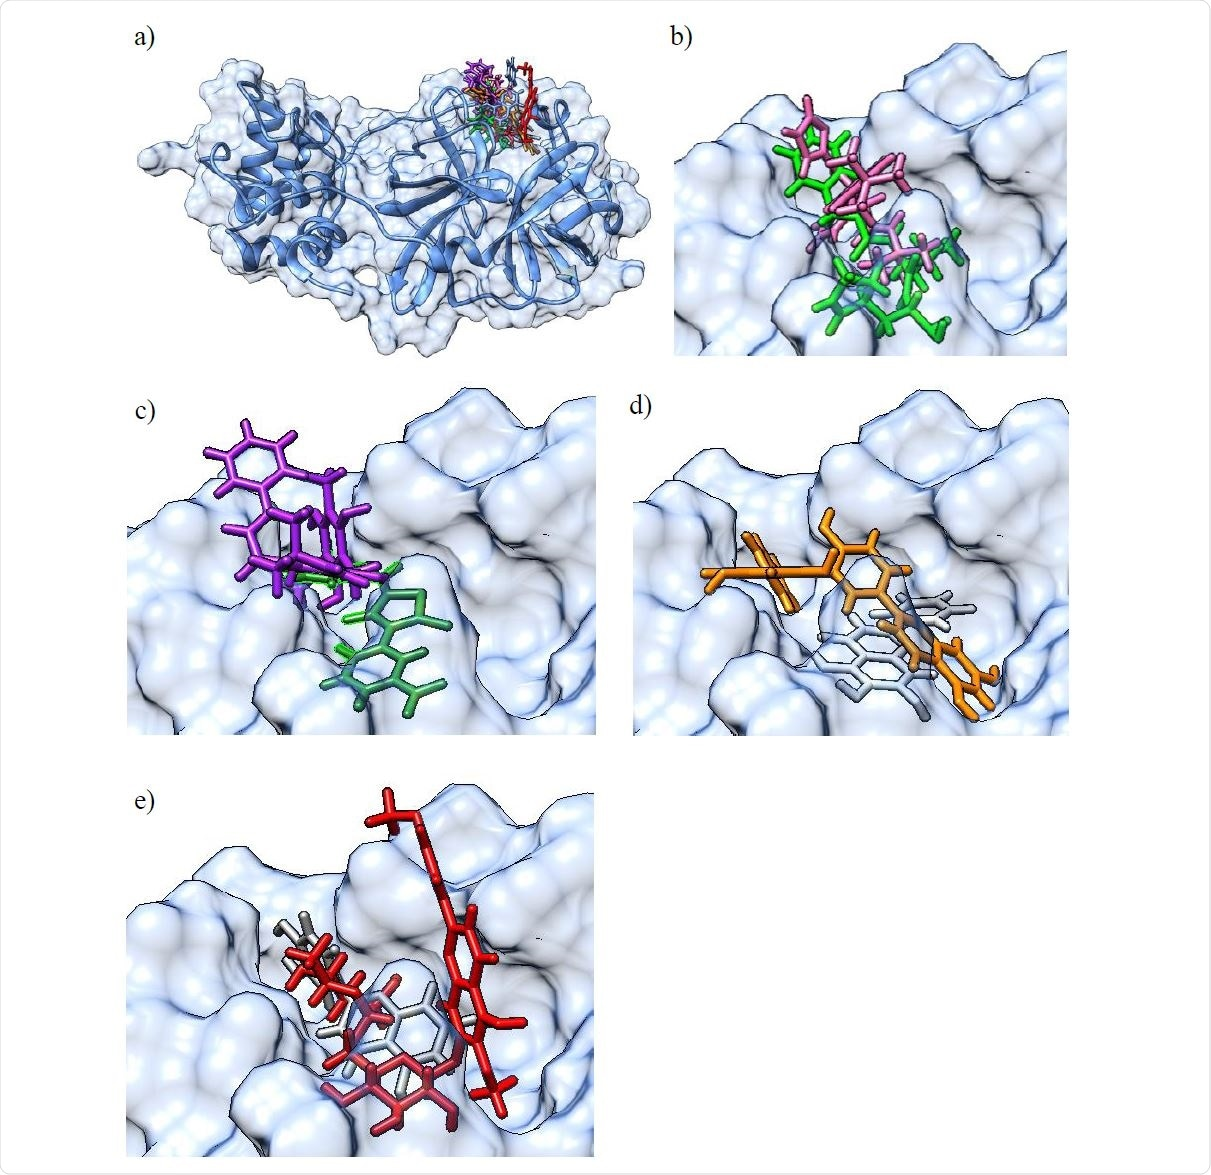 a) Molecular surface representation of the 3CLpro protein with an overlay of all confirmed actives in the binding pocket (top right) in their best scoring docking conformations (only for GC-376 / GC-373 and baicalein, crystal structures of the protein-ligand complex were available and used instead of molecular docking derived conformations). The 3CLpro secondary structure is displayed as a blue ribbon, surrounded by the solvent excluded molecular surface representation in transparent blue, and with the colored ligands shown in a stick representation. b) Larger scale representation of the overlaid pair of ligands with the lowest IC50 values: GC-376 (light green) and M-8524 (pink) in the 3CLpro binding pocket (top right part of figure 3 a); c) overlaid pair of ligands rottlerin (purple) and M-1805 (dark green); d) overlaid pair of ligands amentoflavone (orange) and baicalein (light gray); e) overlaid pair of ligands luteolin (dark gray) and pectolinarin (red).